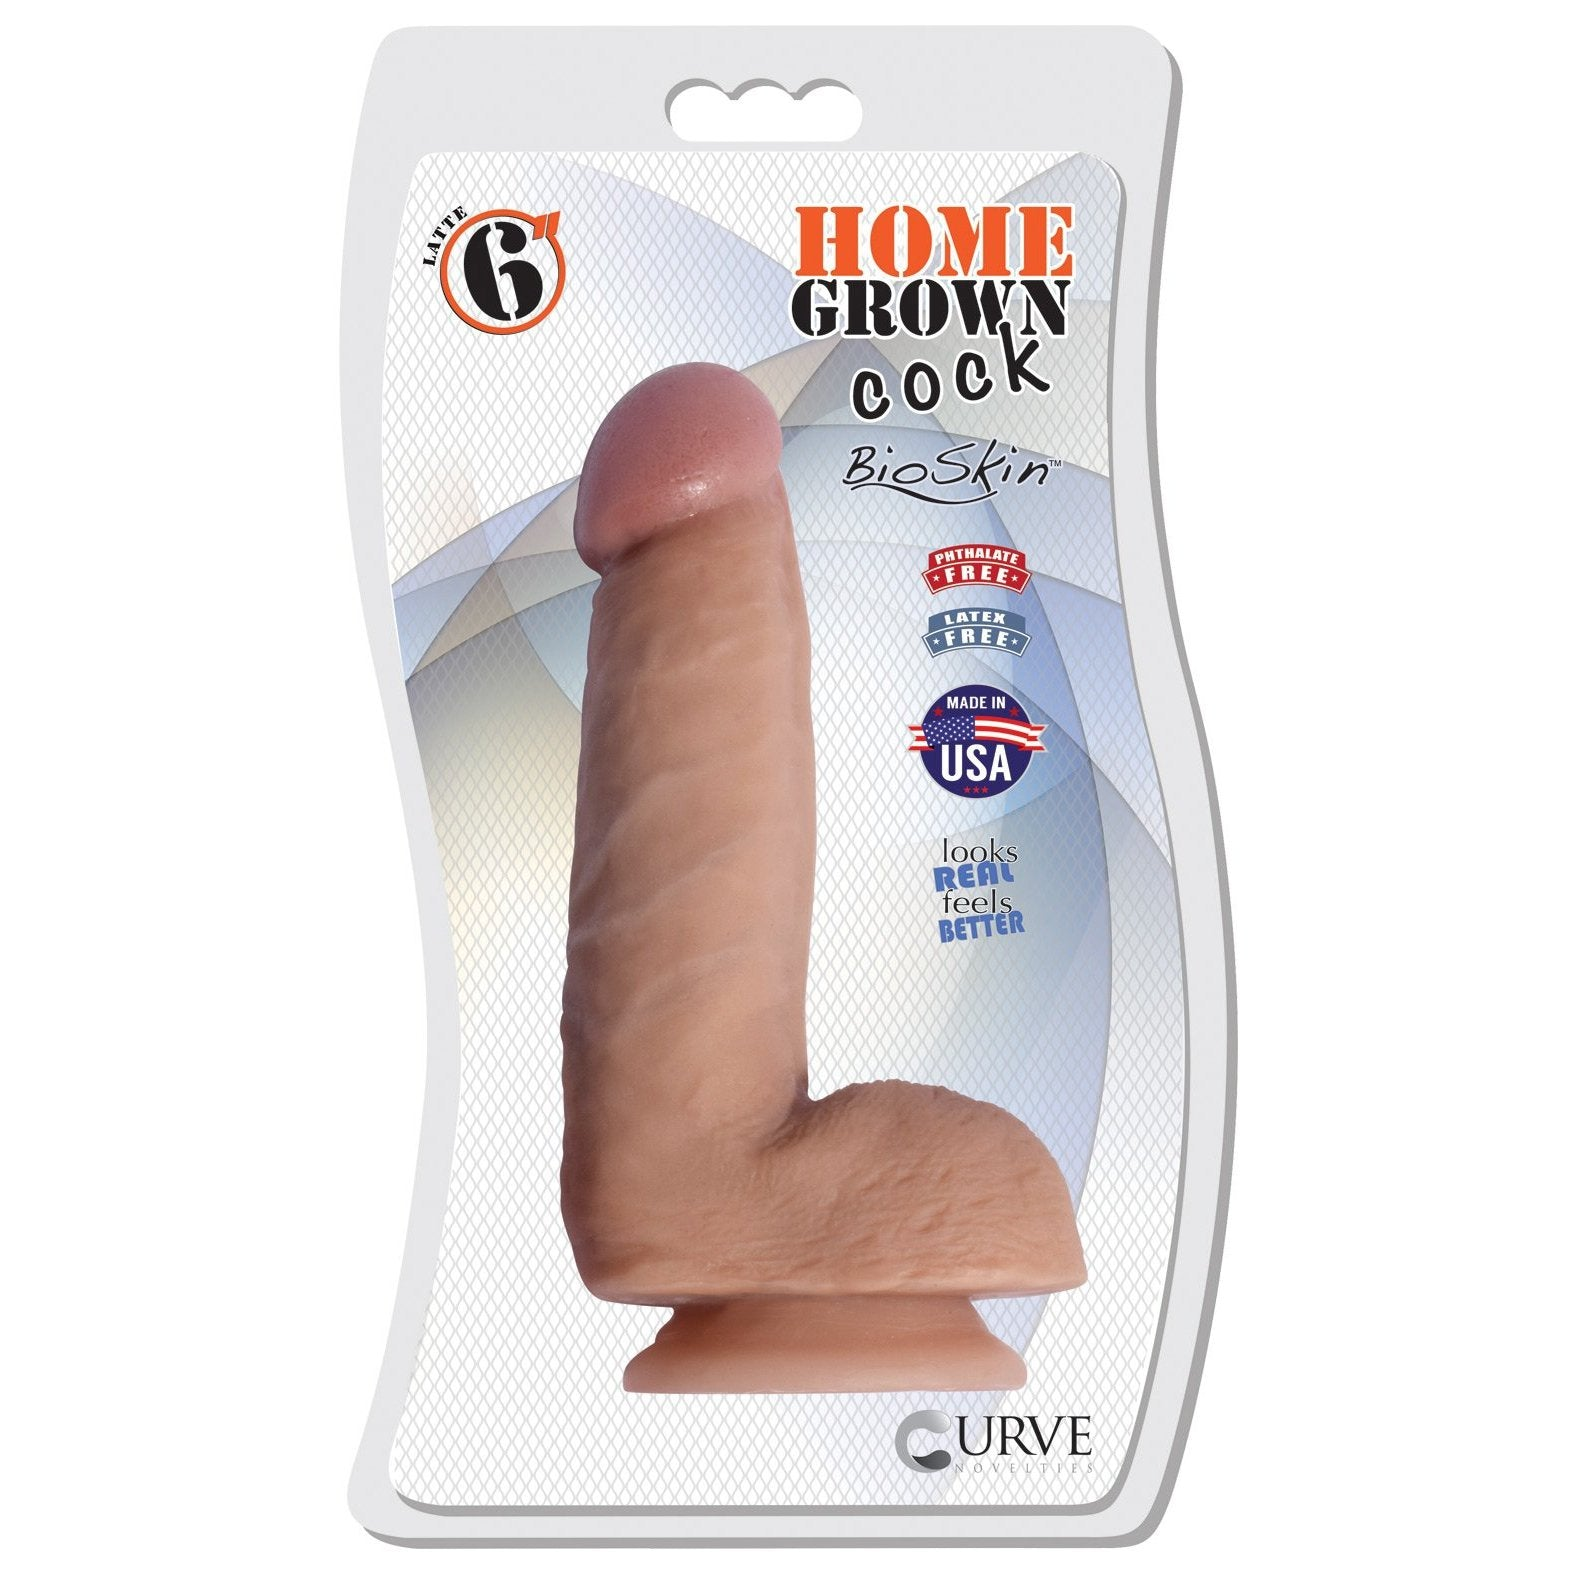 "Curve Novelties Home Grown 6"" BioSkin Dildo - Gay Men's Sex Toys - Adam's Toy Box"